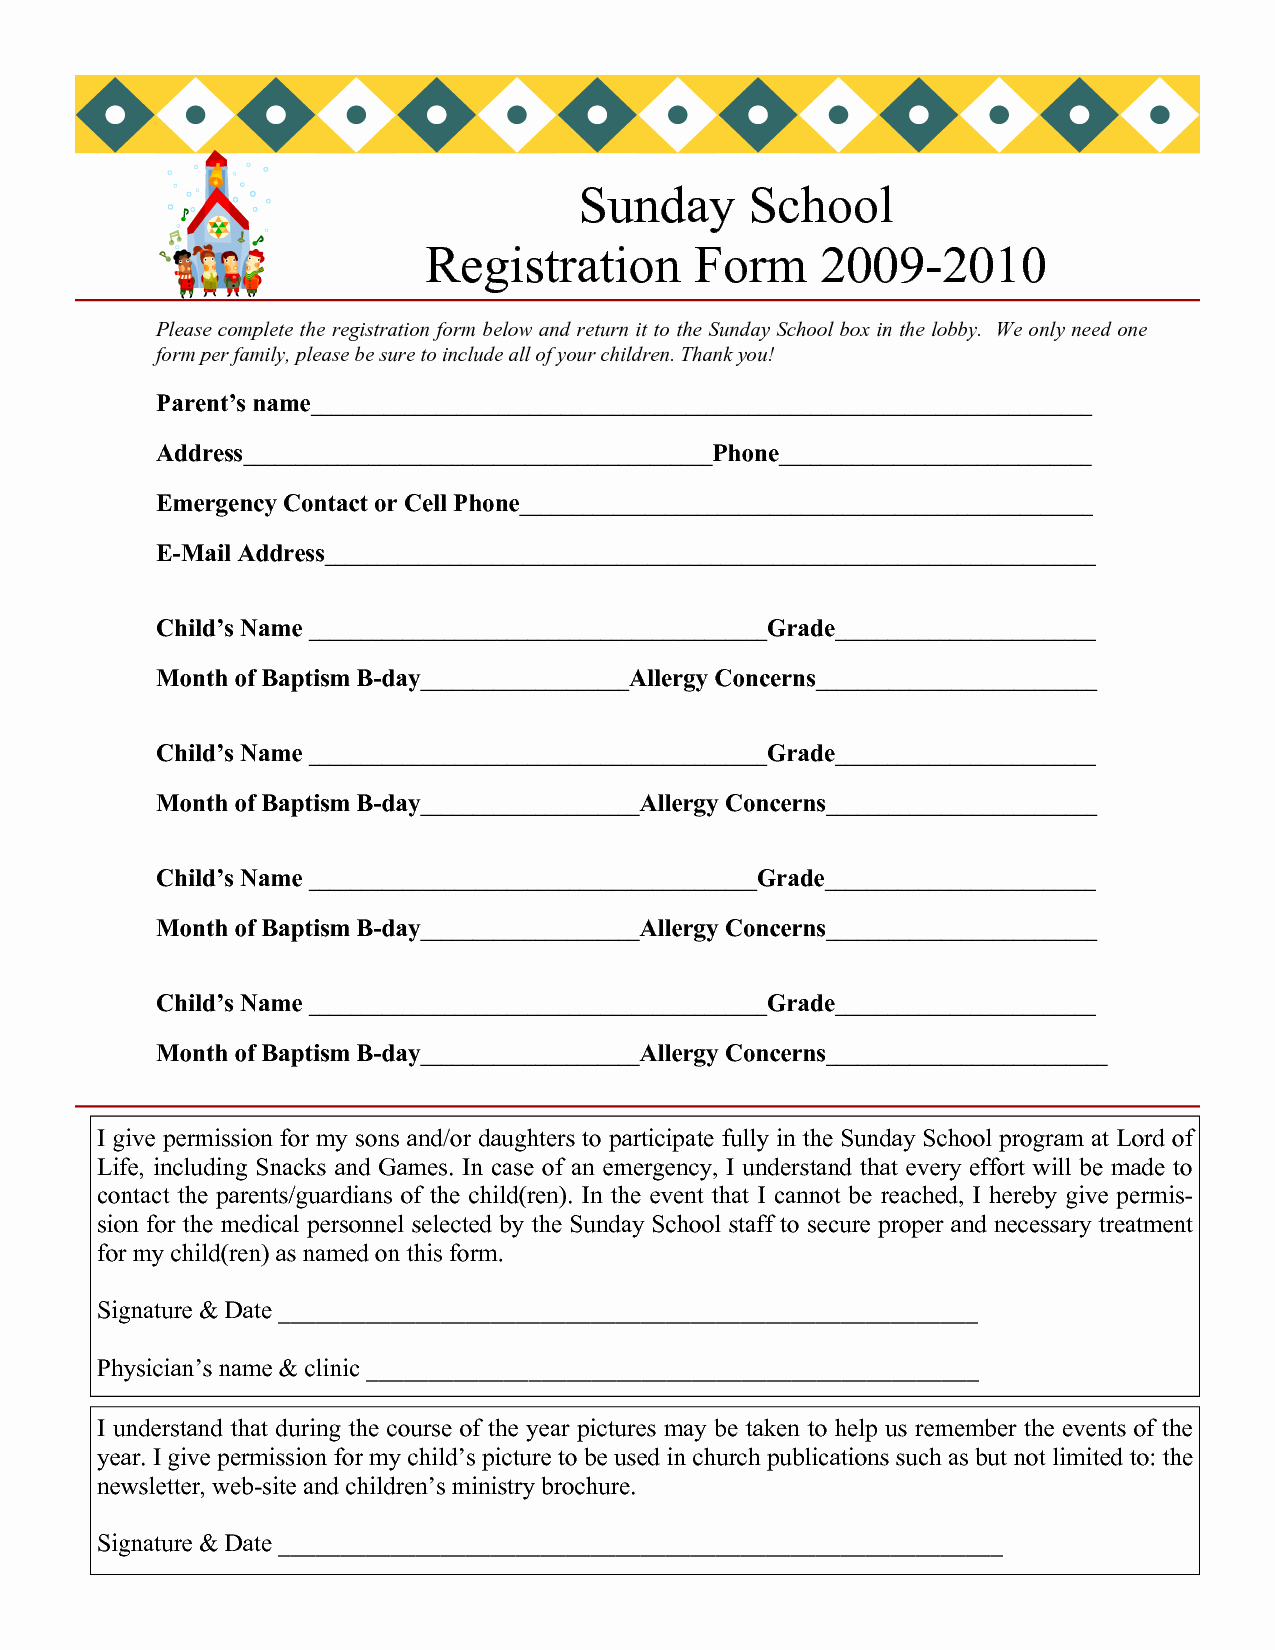 School Registration forms Template Elegant Sunday School Registration form 2009 2010